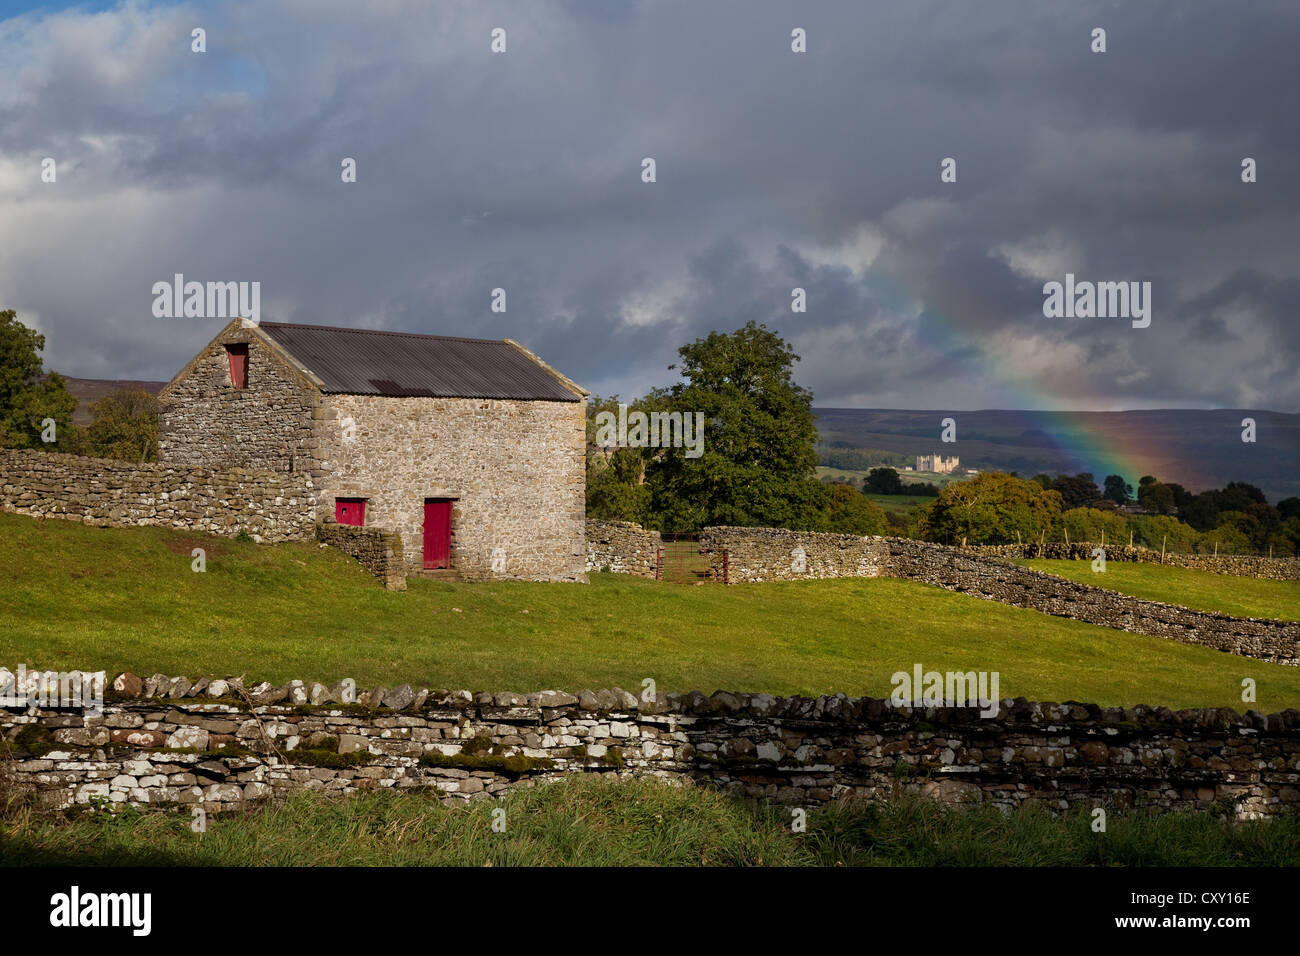 Rainbow over Bolton Castle, Aysgarth in Wensleydale, North Yorkshire Dales, UK Stock Photo